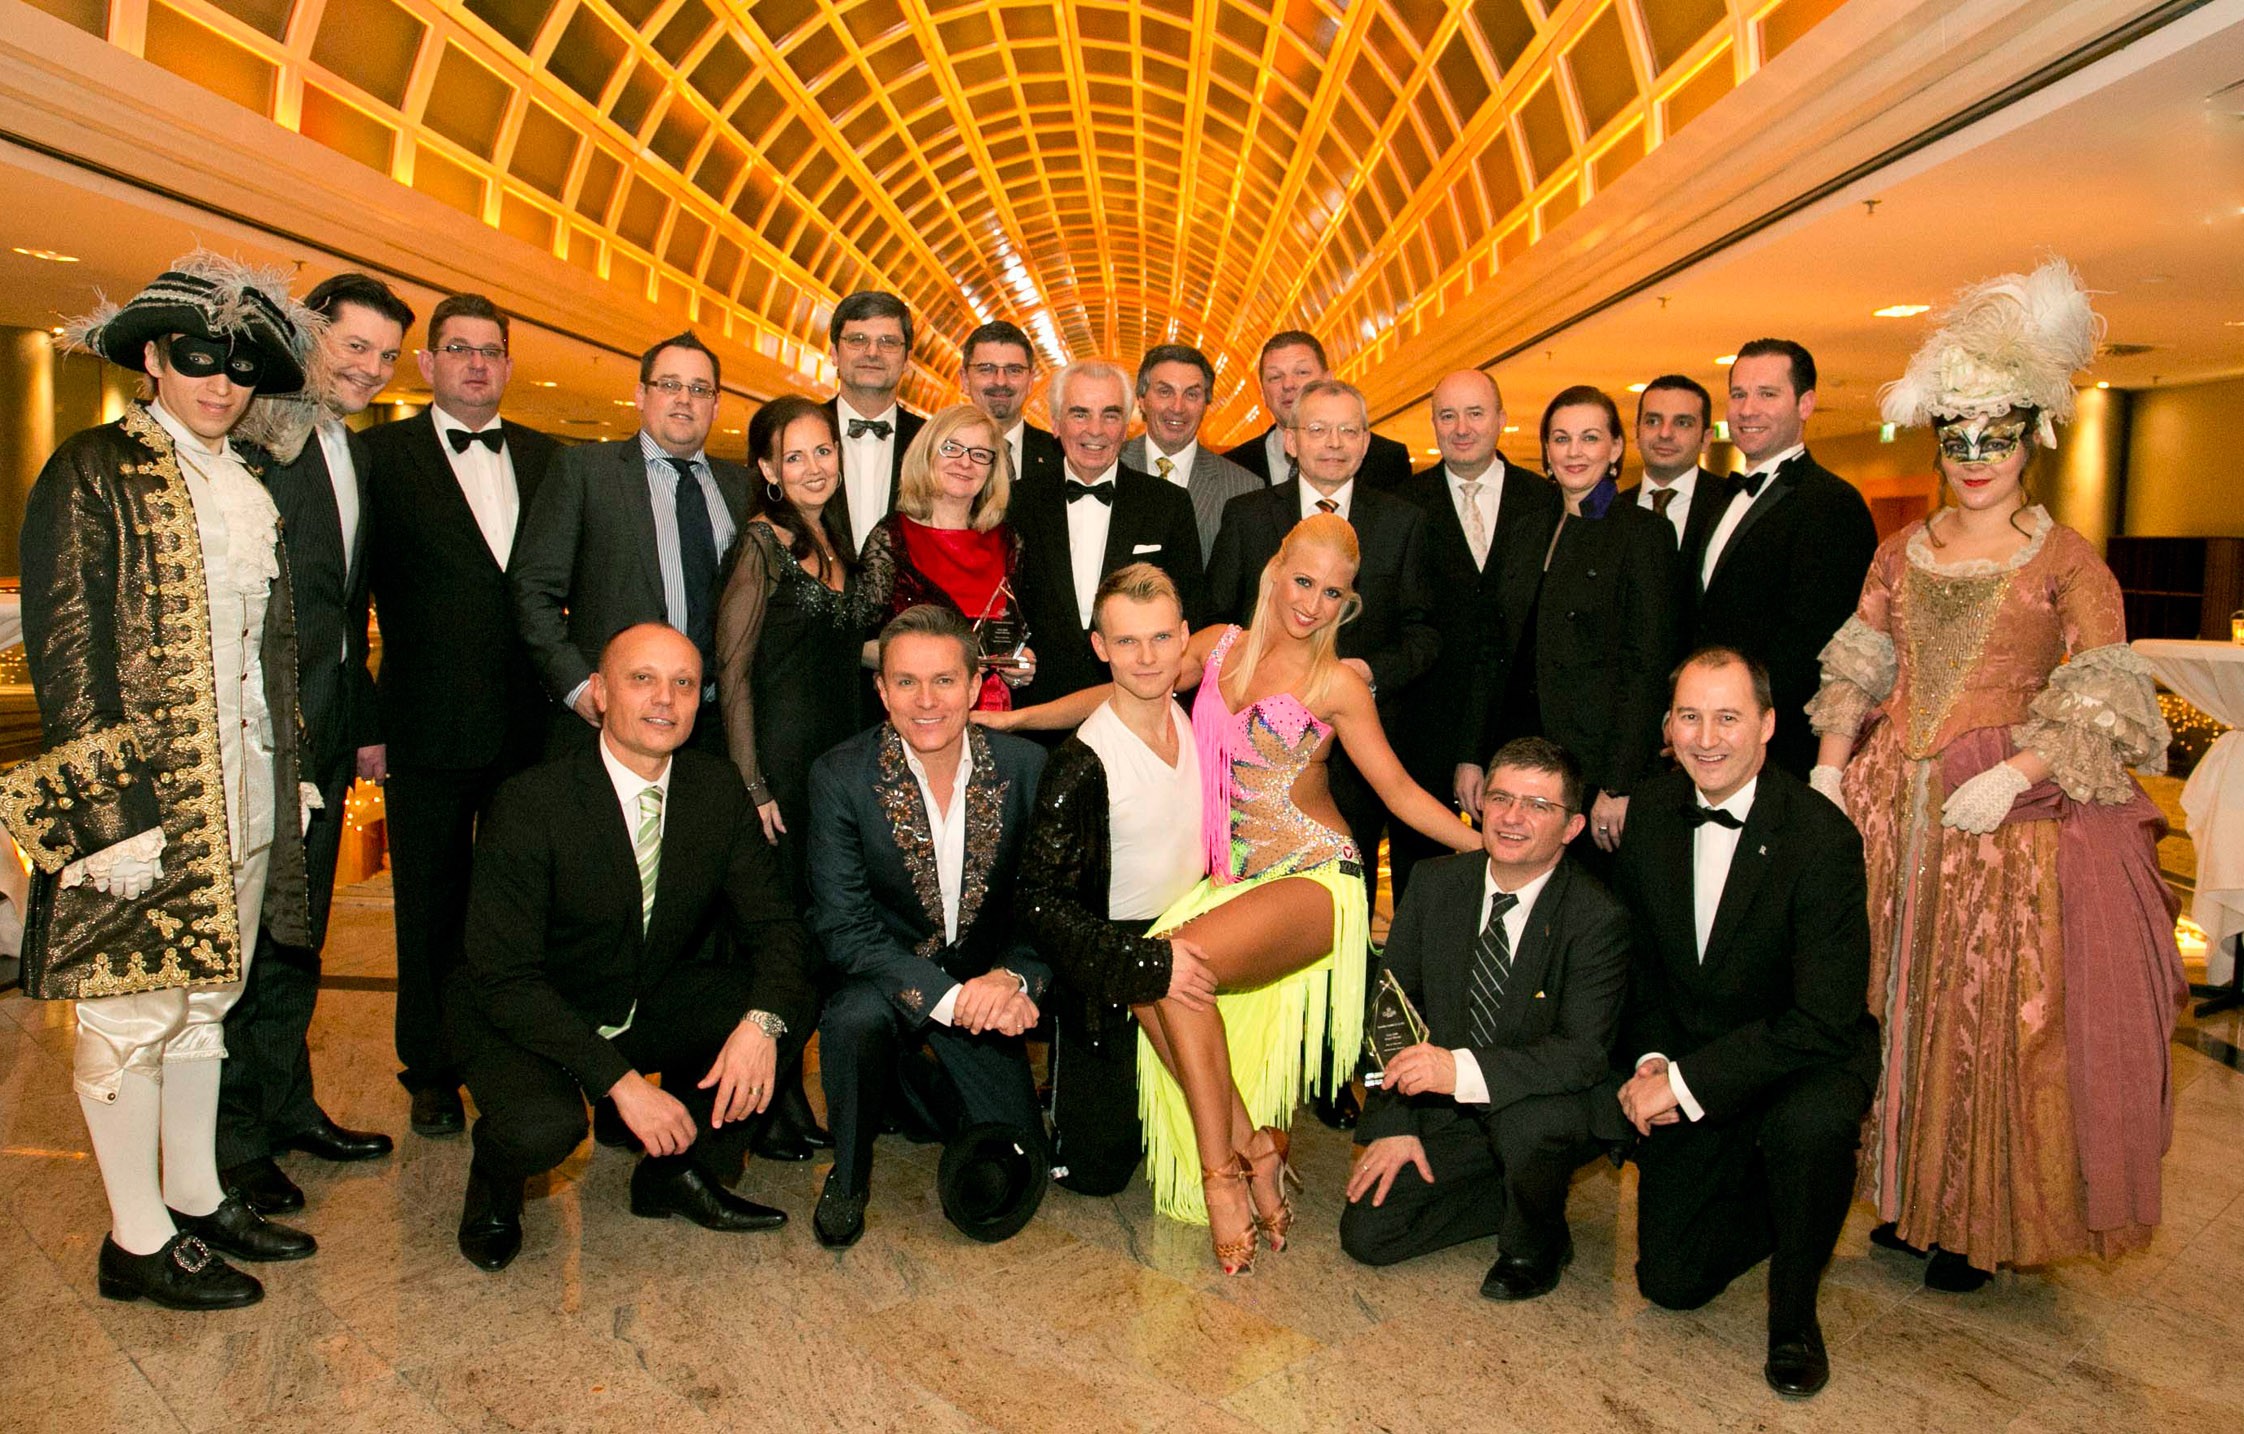 Vienna, Austria Hotels Reward Loyalty with Gala